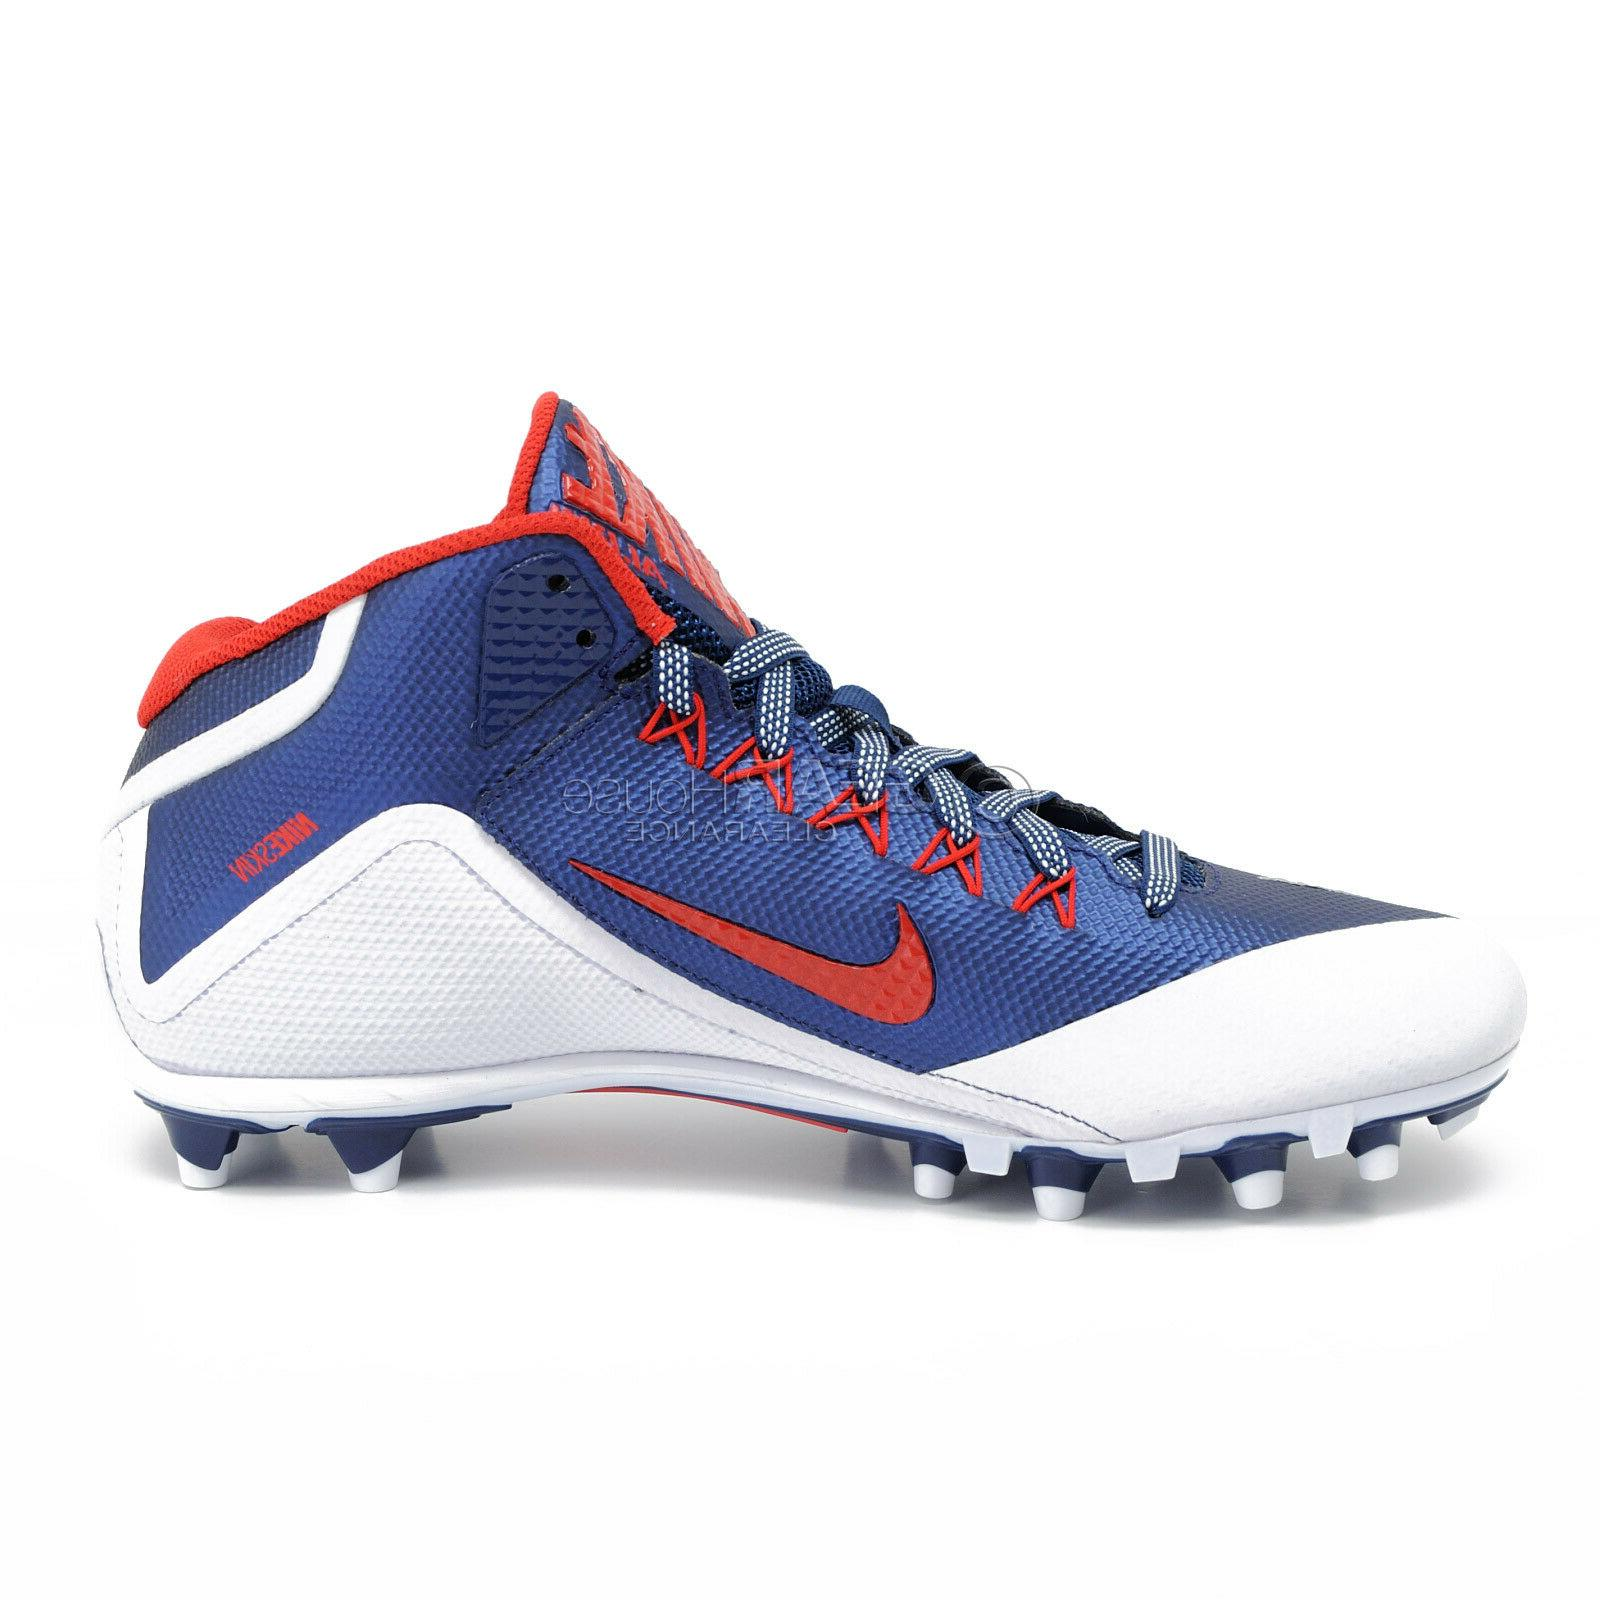 New Nike Alpha II Mens Football Navy Blue White Red - 11.5